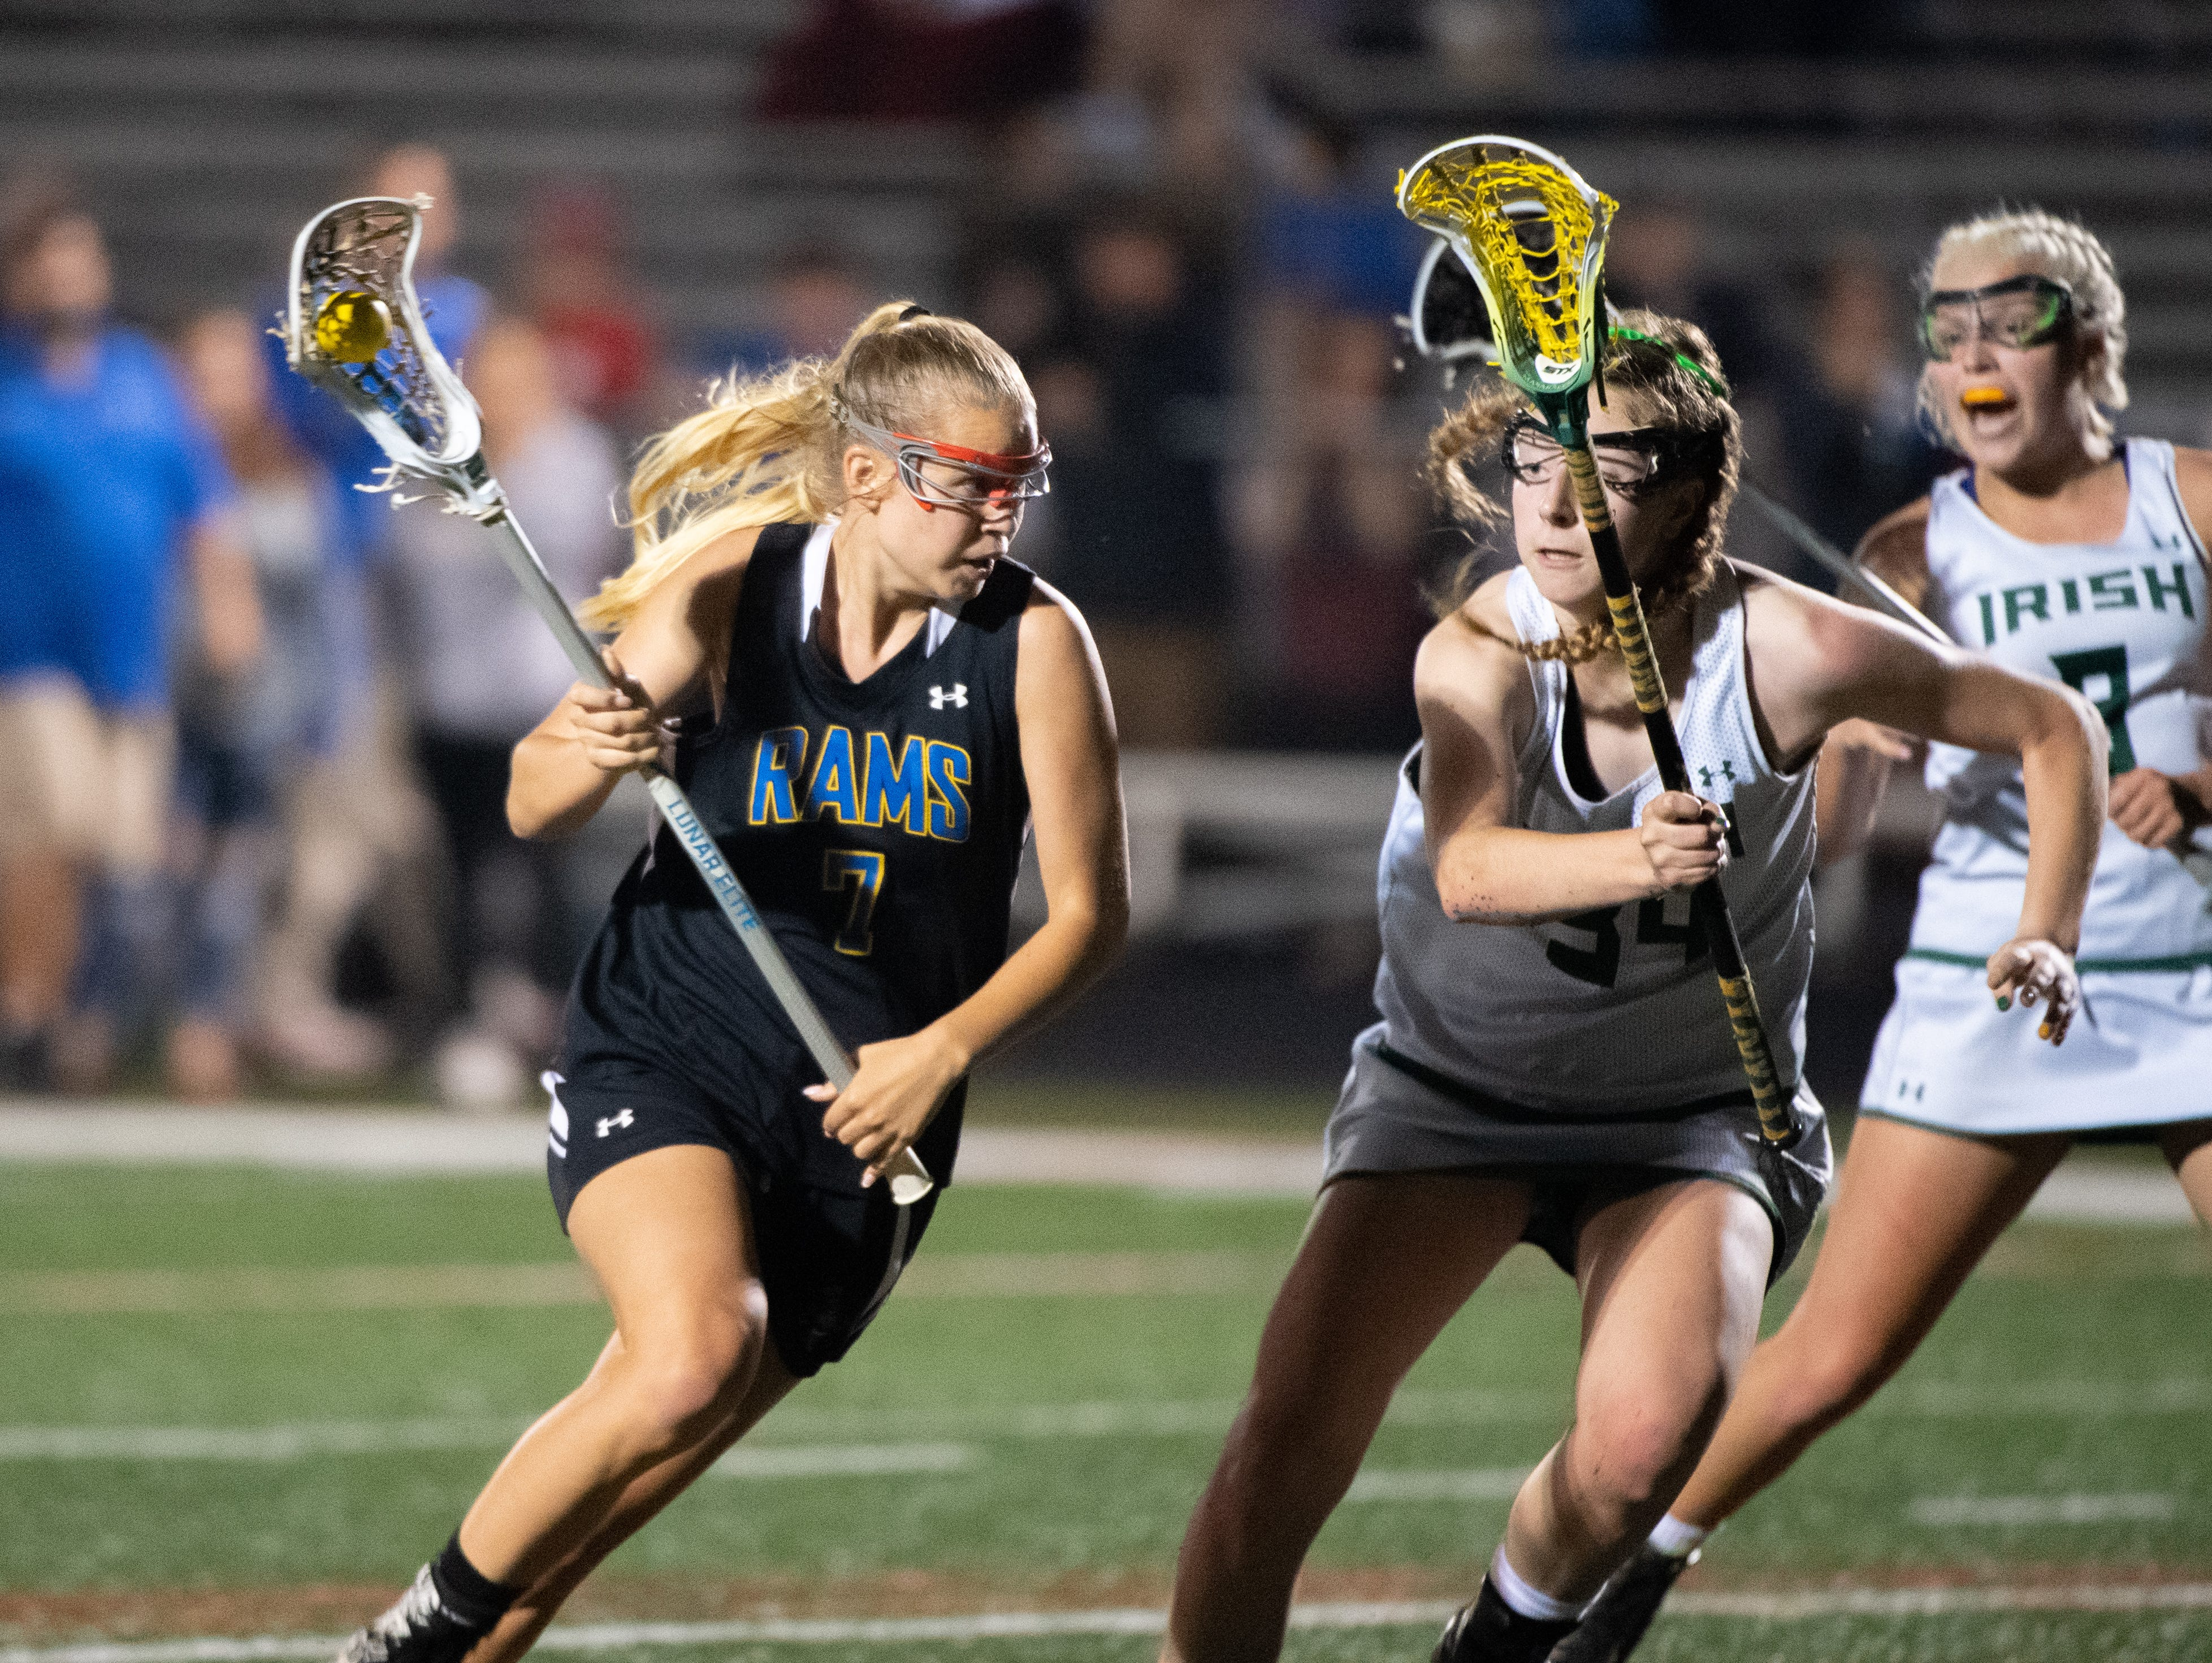 Chloe Fornoff (7) looks for an opening during the YAIAA girls lacrosse championship game between York Catholic and Kennard-Dale, May 10, 2019 at Eastern York High School. The Rams defeated the Fighting Irish 11 to 10.